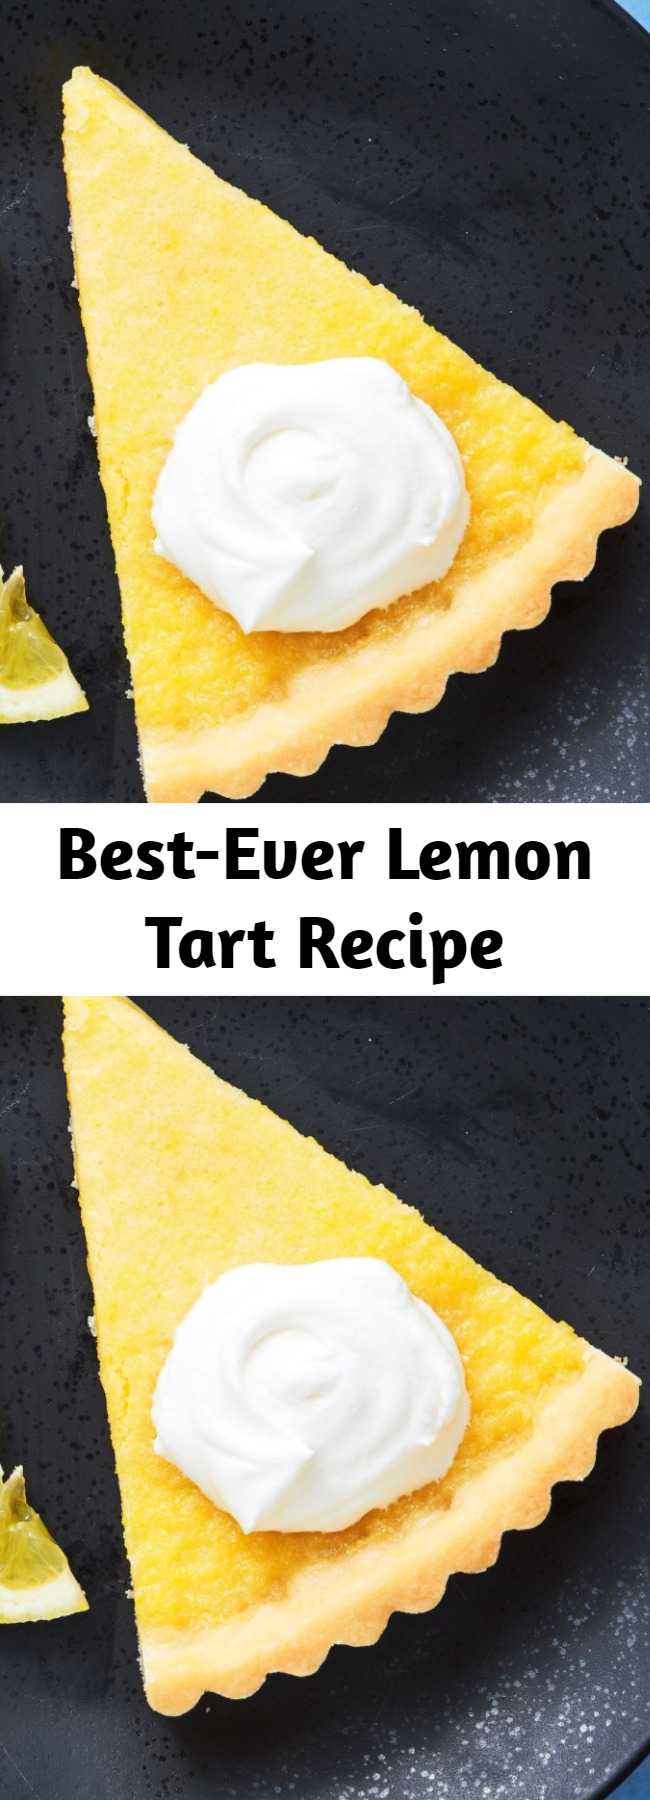 Best-Ever Lemon Tart Recipe - This impressive tart is surprisingly easy to make. We love serving it with a big dollop of homemade whipped cream.